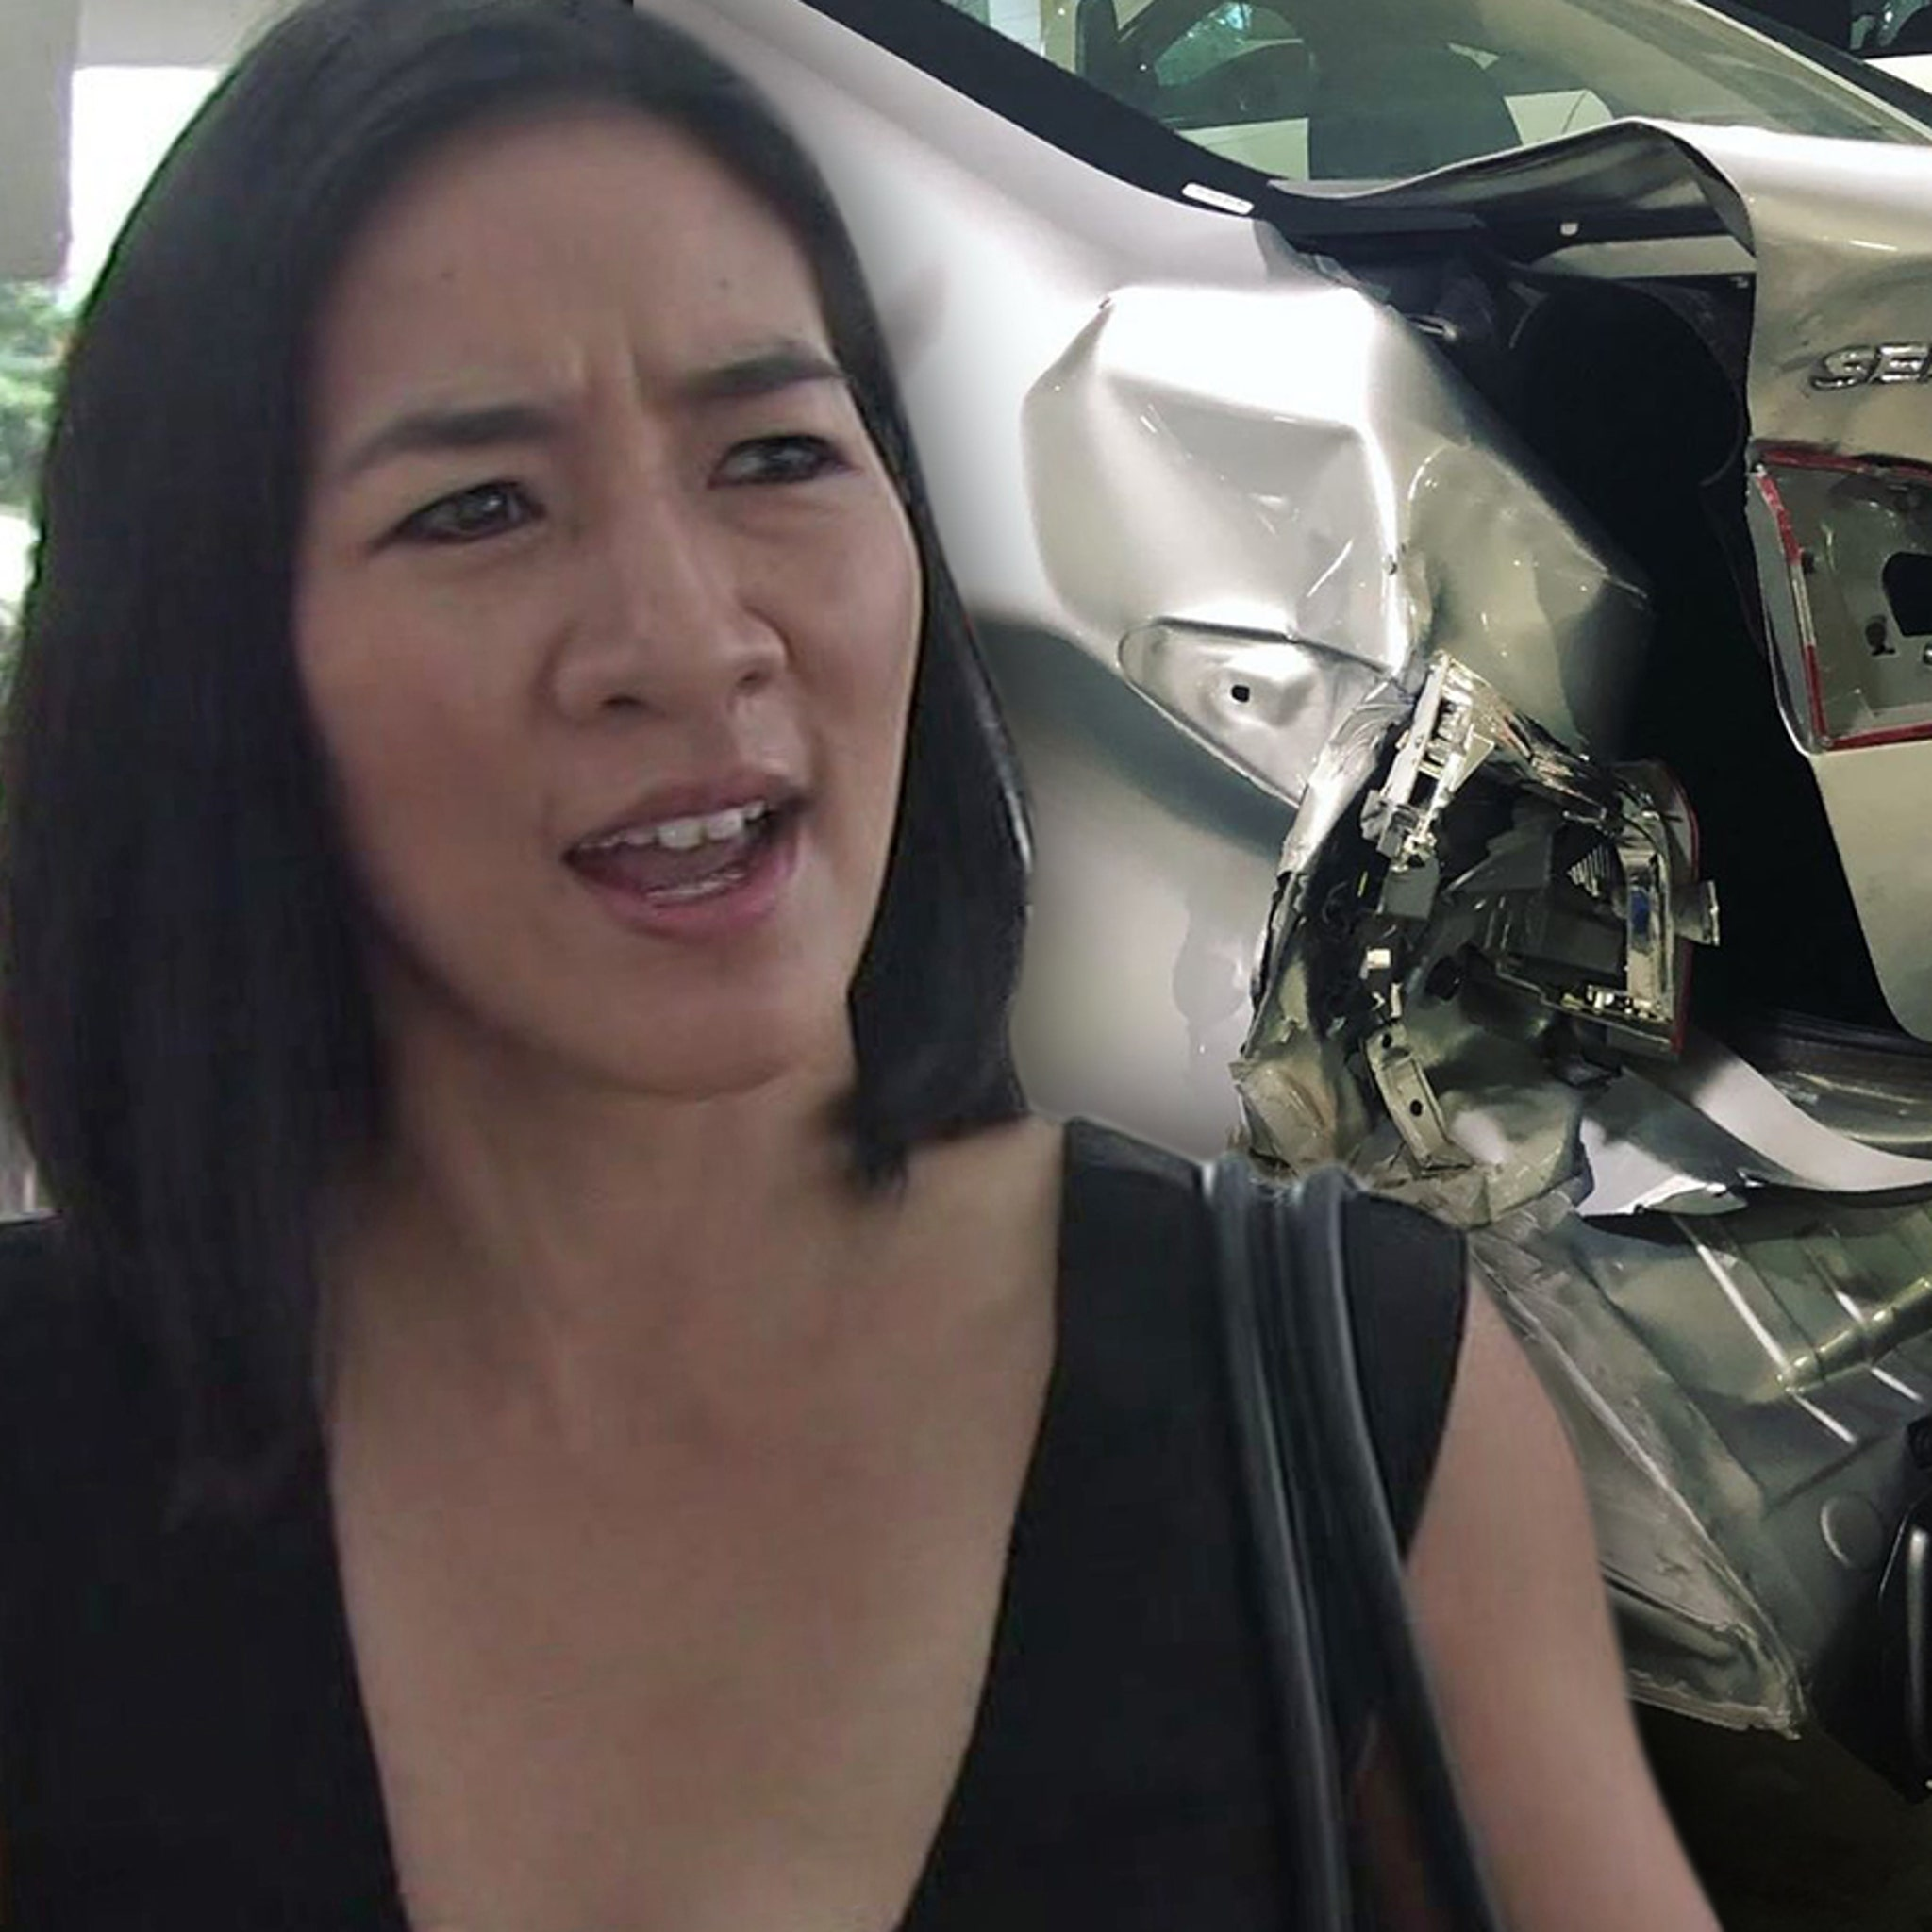 Michelle Kwan In Bad Car Crash, Rips 'Coward' Who Drove Off